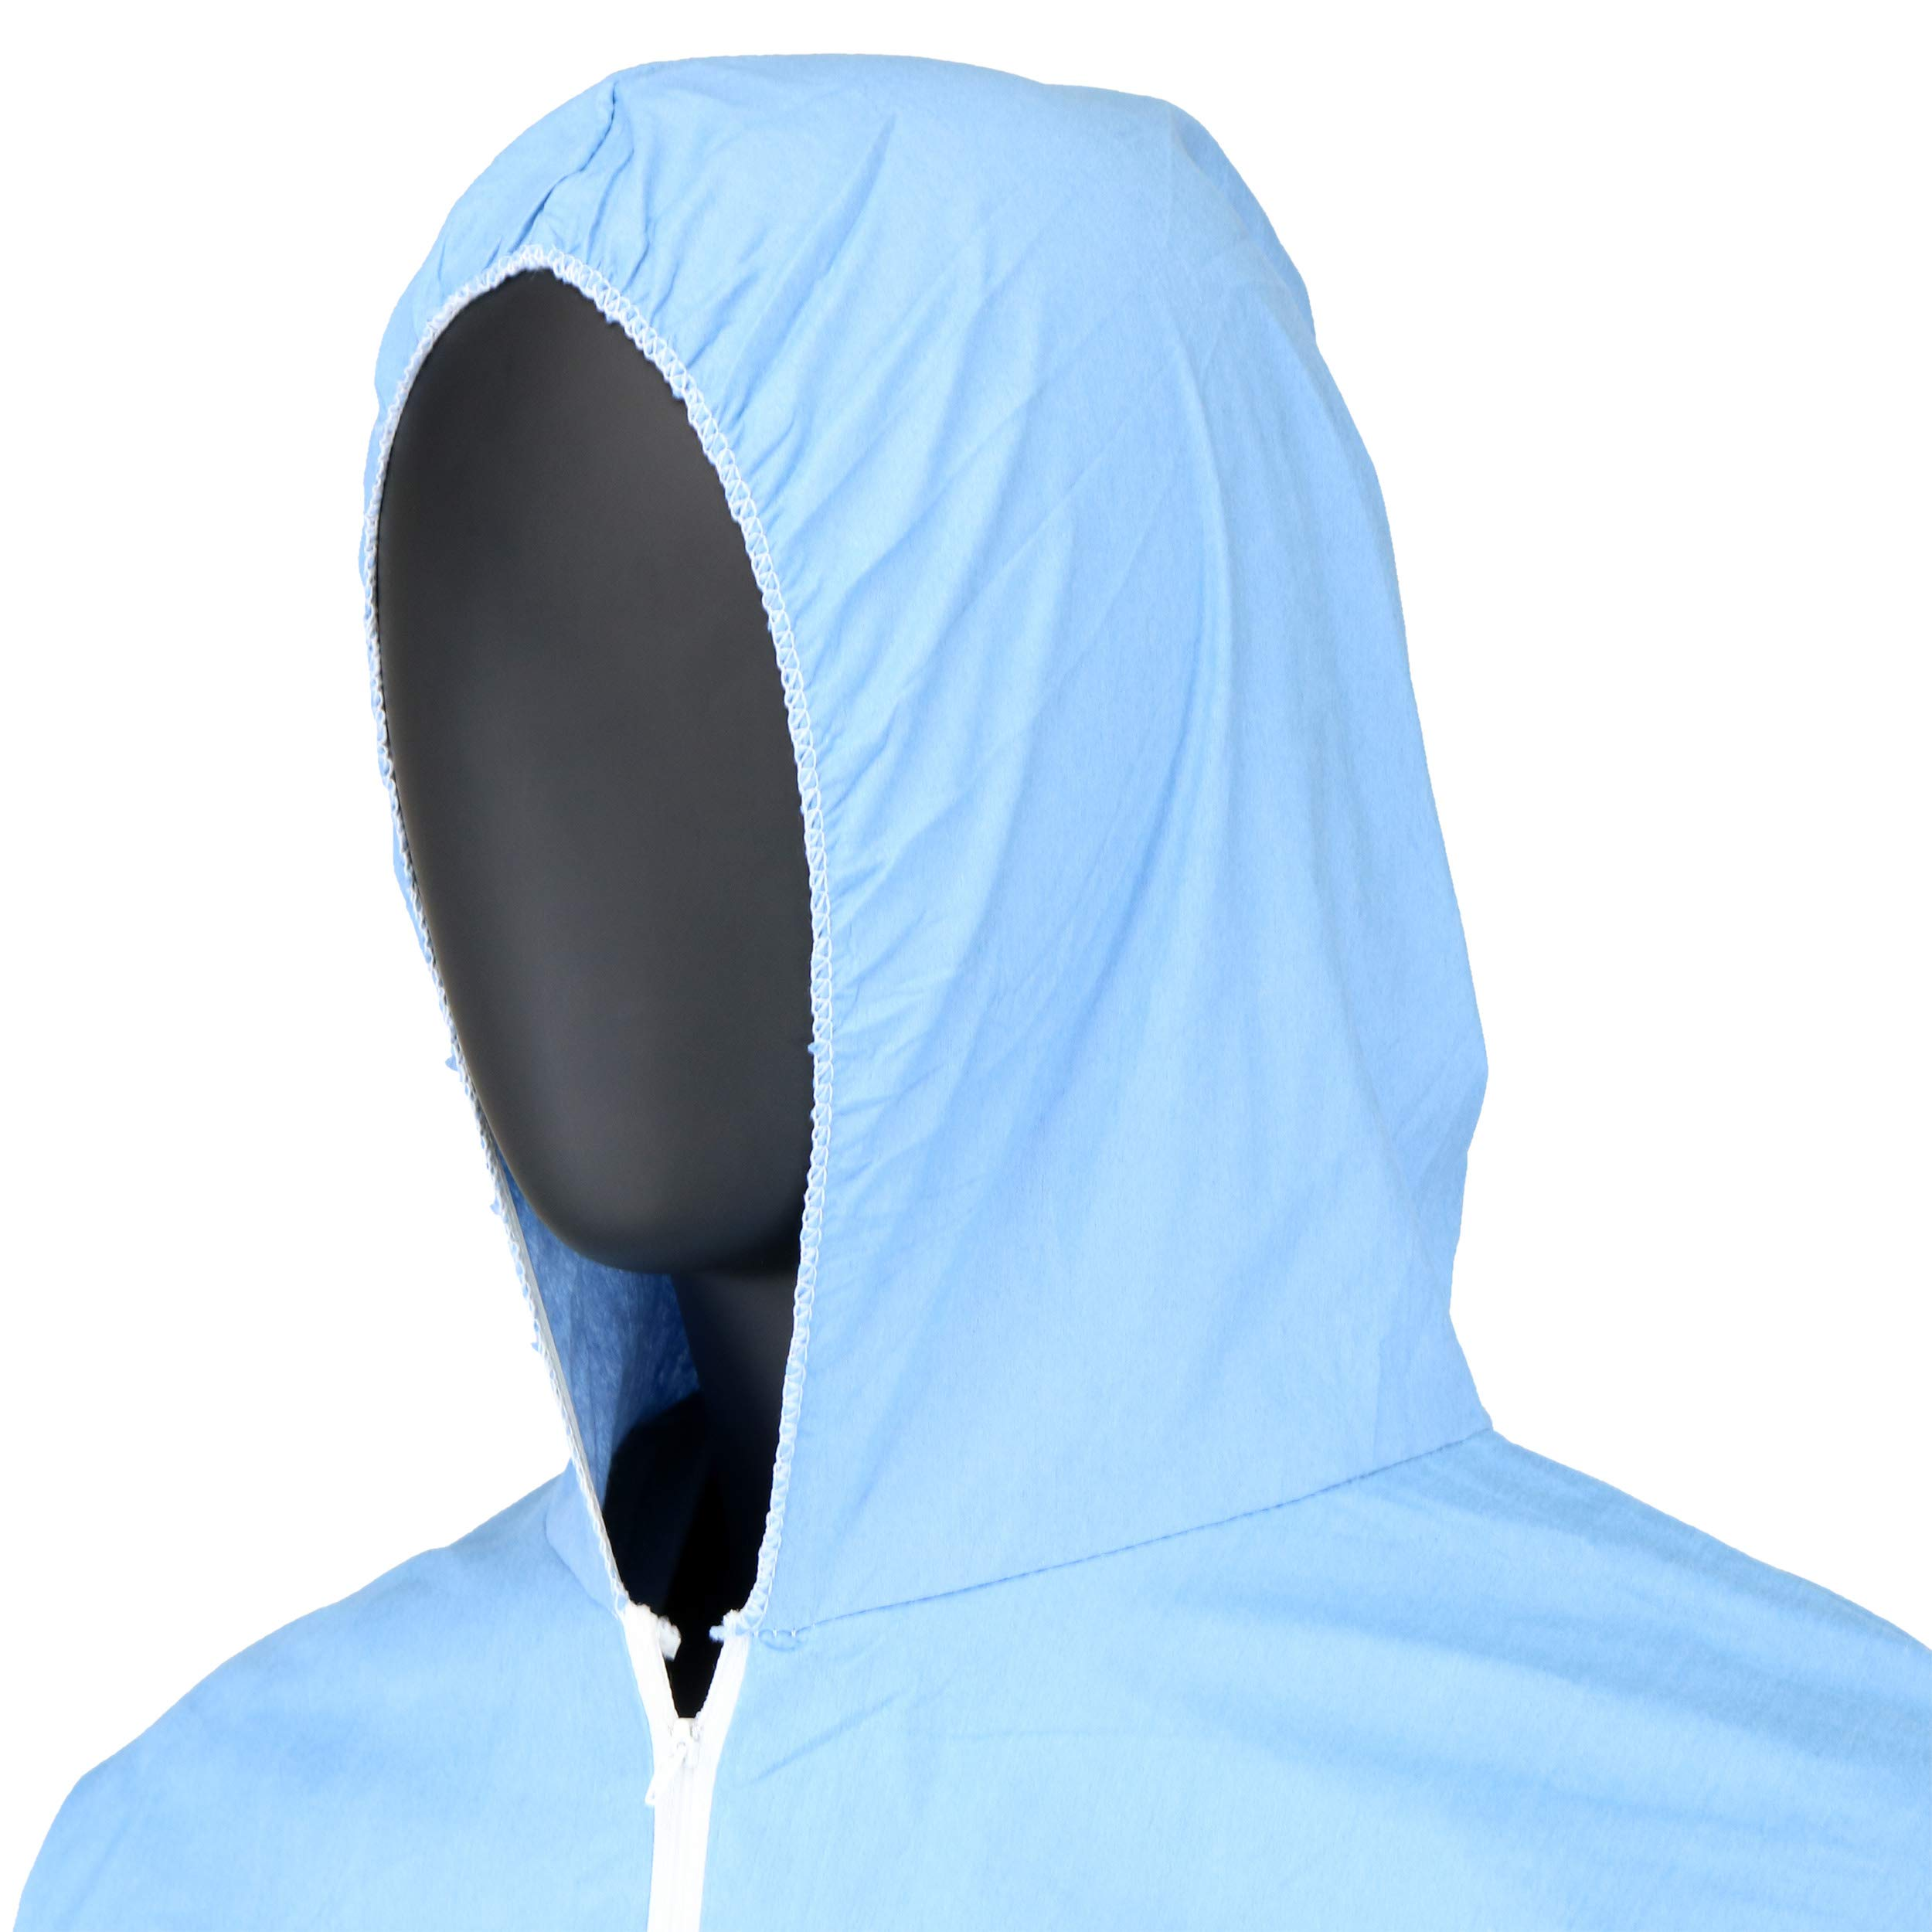 West Chester 3109/XL Posi FR Coverall Hood, Boot, Elastic Wrist & Ankle, XL, Blue (Box of 25) by West Chester (Image #8)